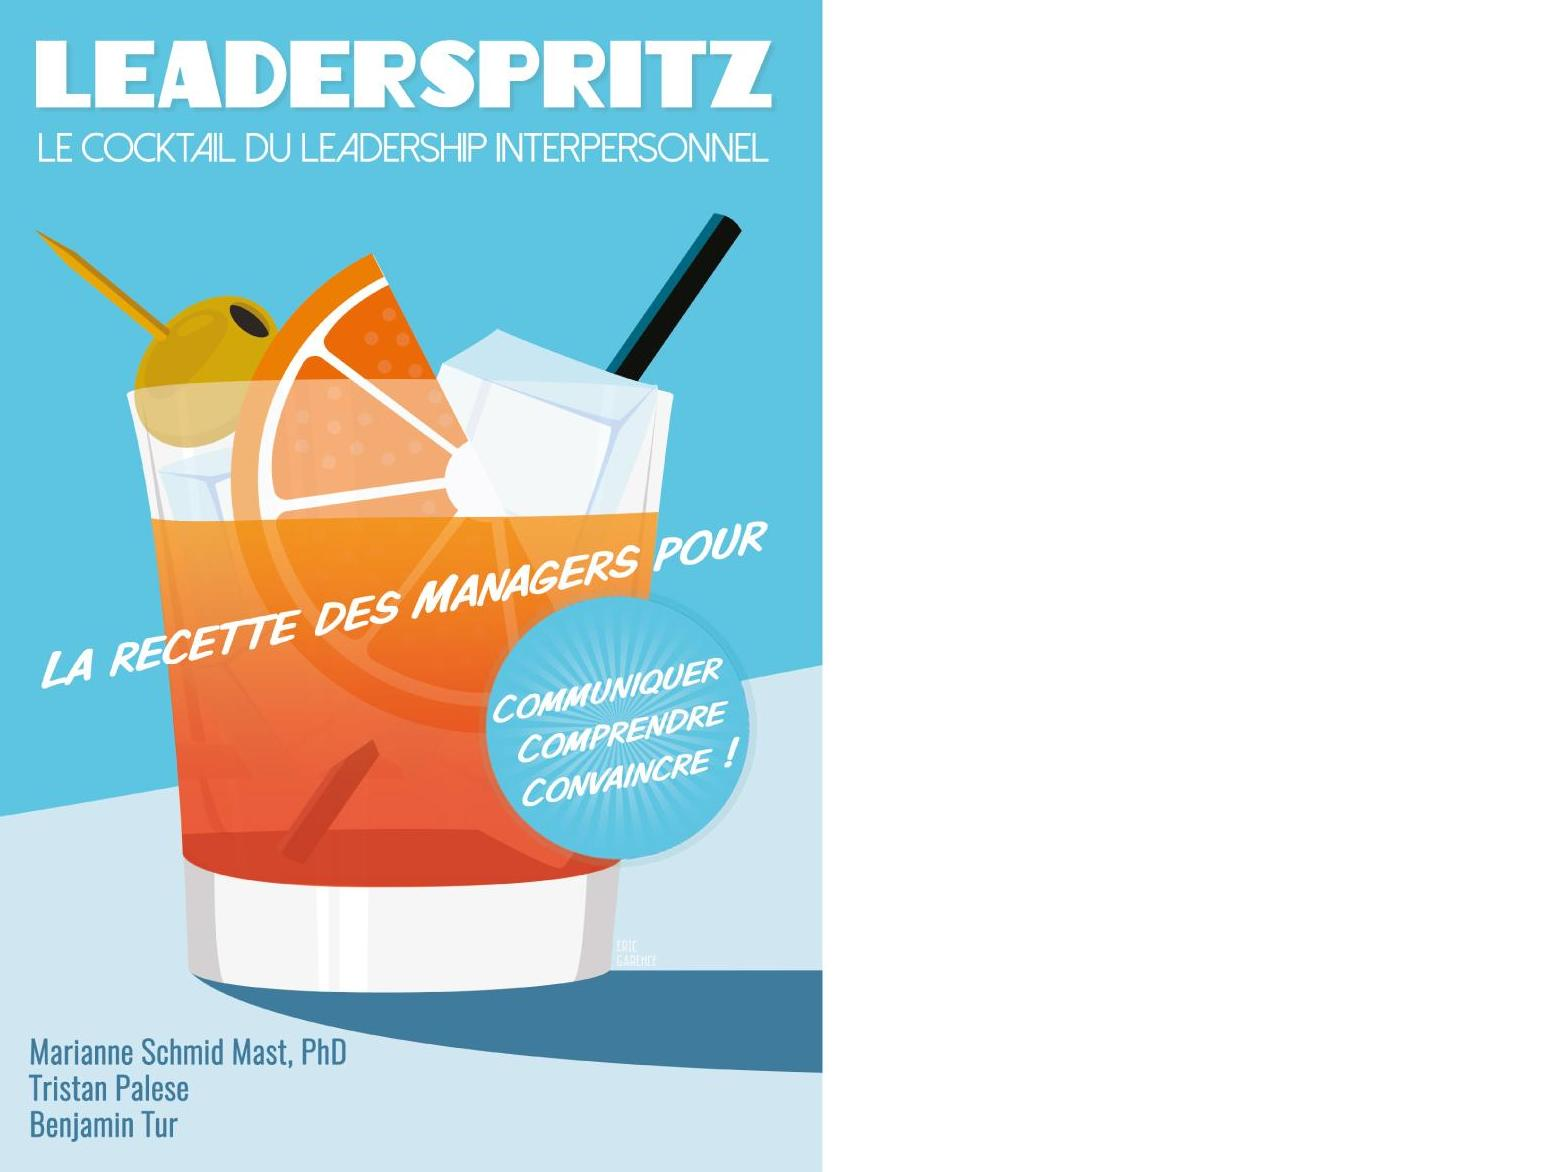 Leaderspritz, le cocktail du leadership interpersonnel